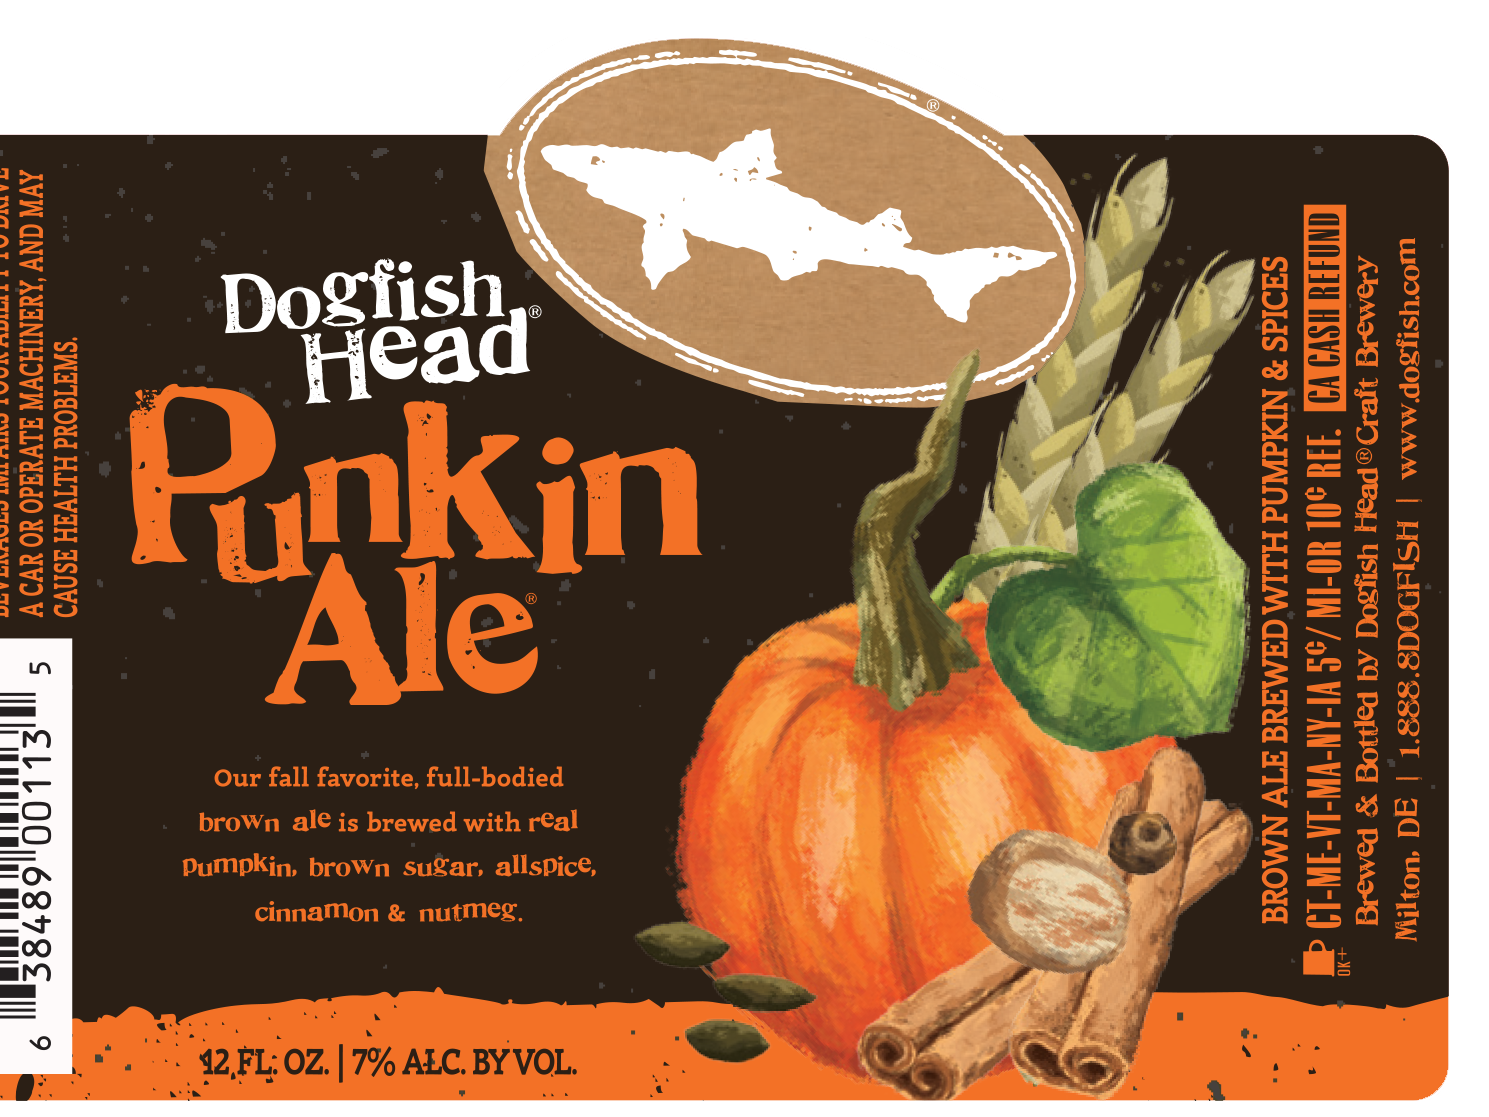 Dogfish Head's Punkin Ale label for 2017.